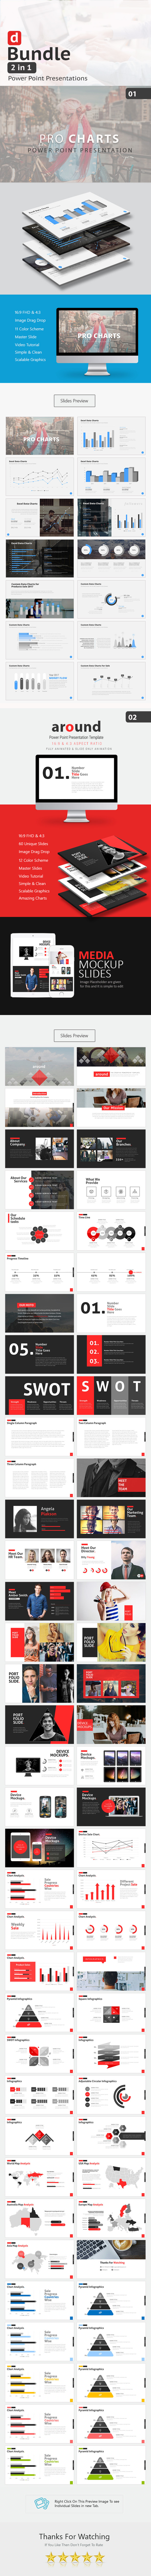 D Bundle 2 in 1 Power Point Presentation - Business PowerPoint Templates